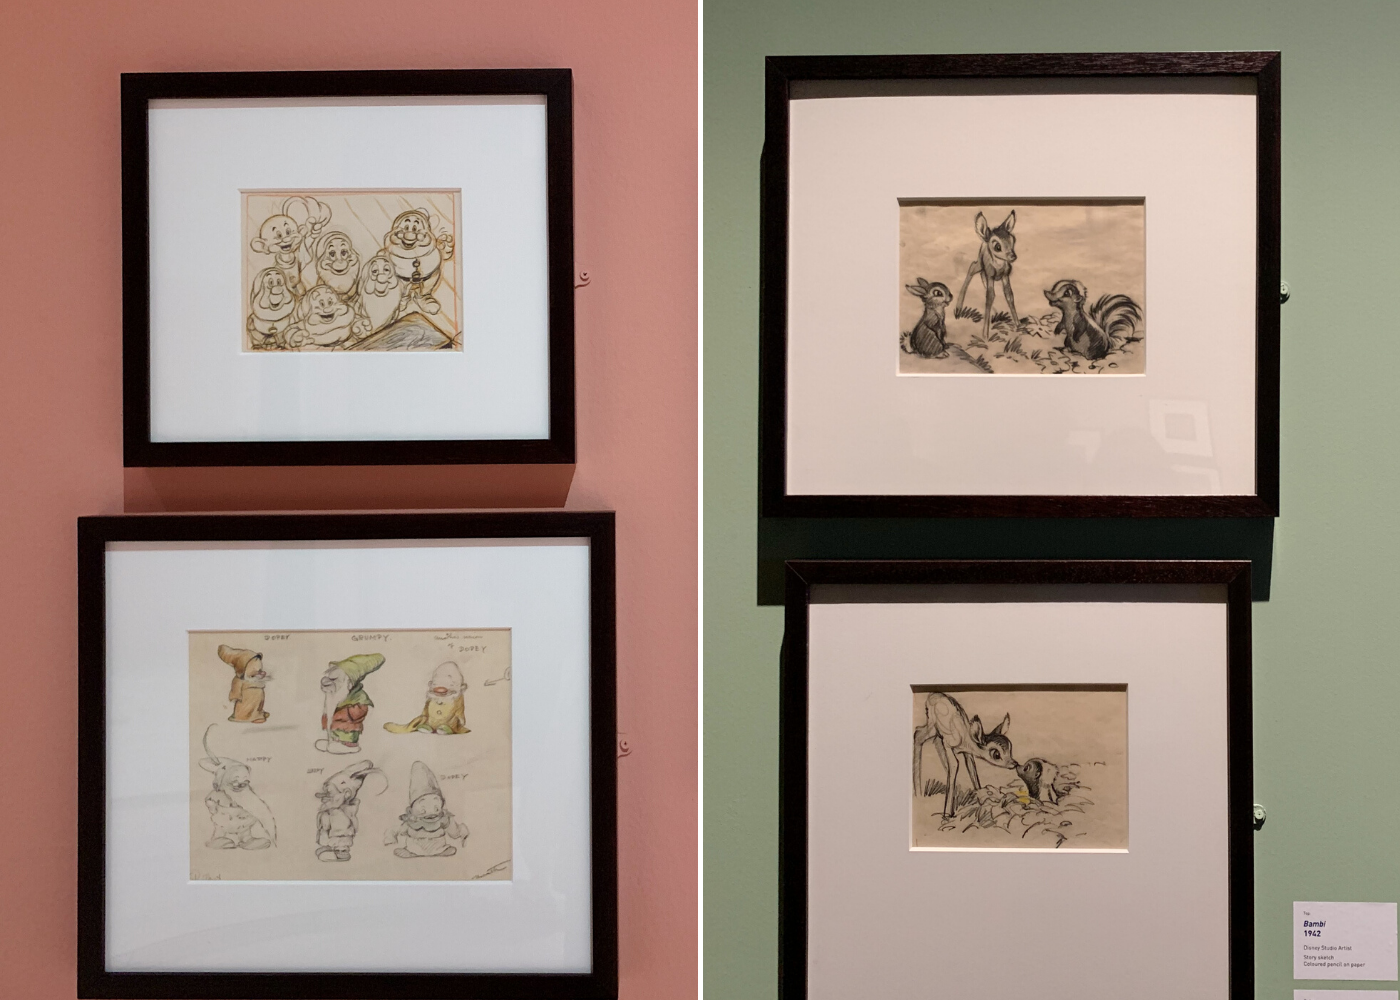 Sketches from Snow White & the Seven Dwarfs and Bambi